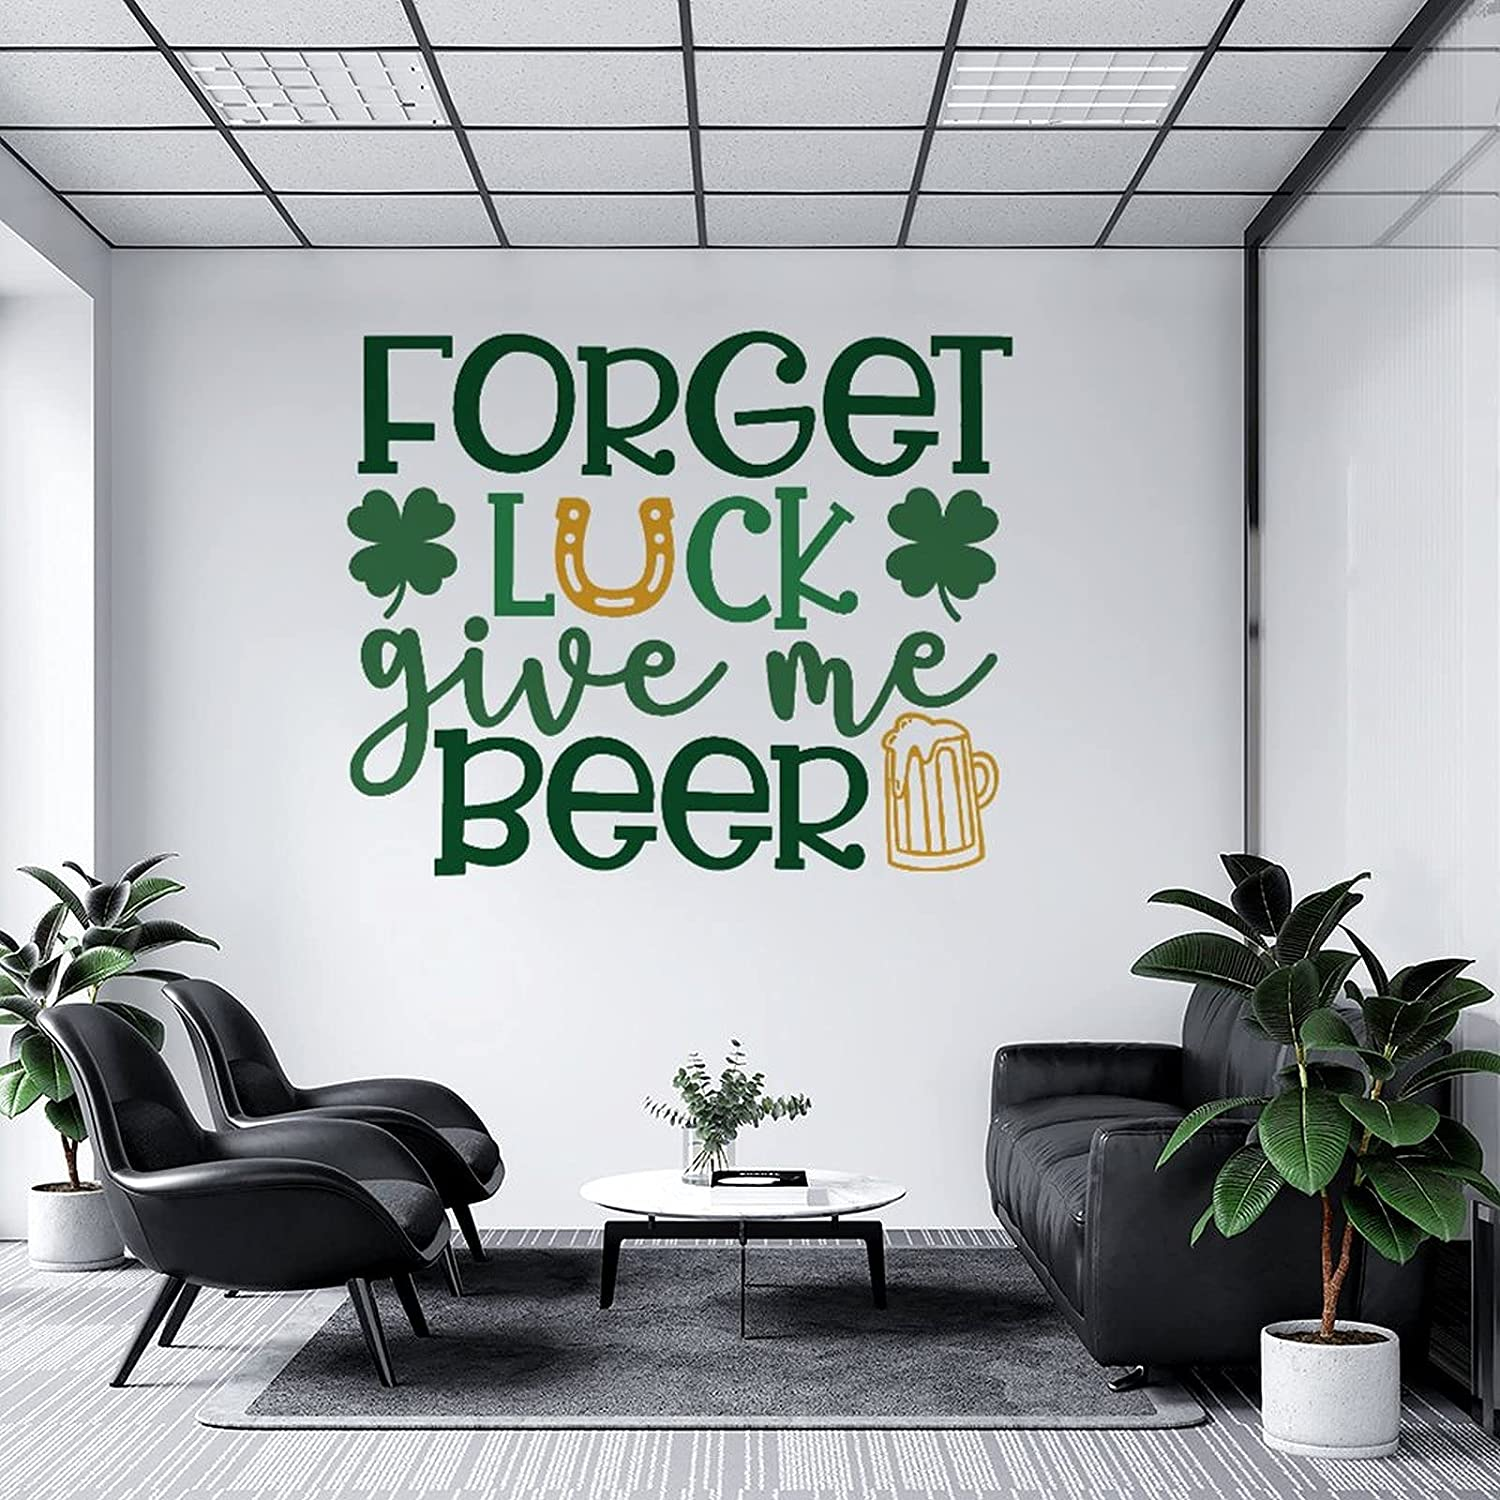 Wall supreme Sale price Decal Forget Luck Give for Decoration Me Beer, Garde